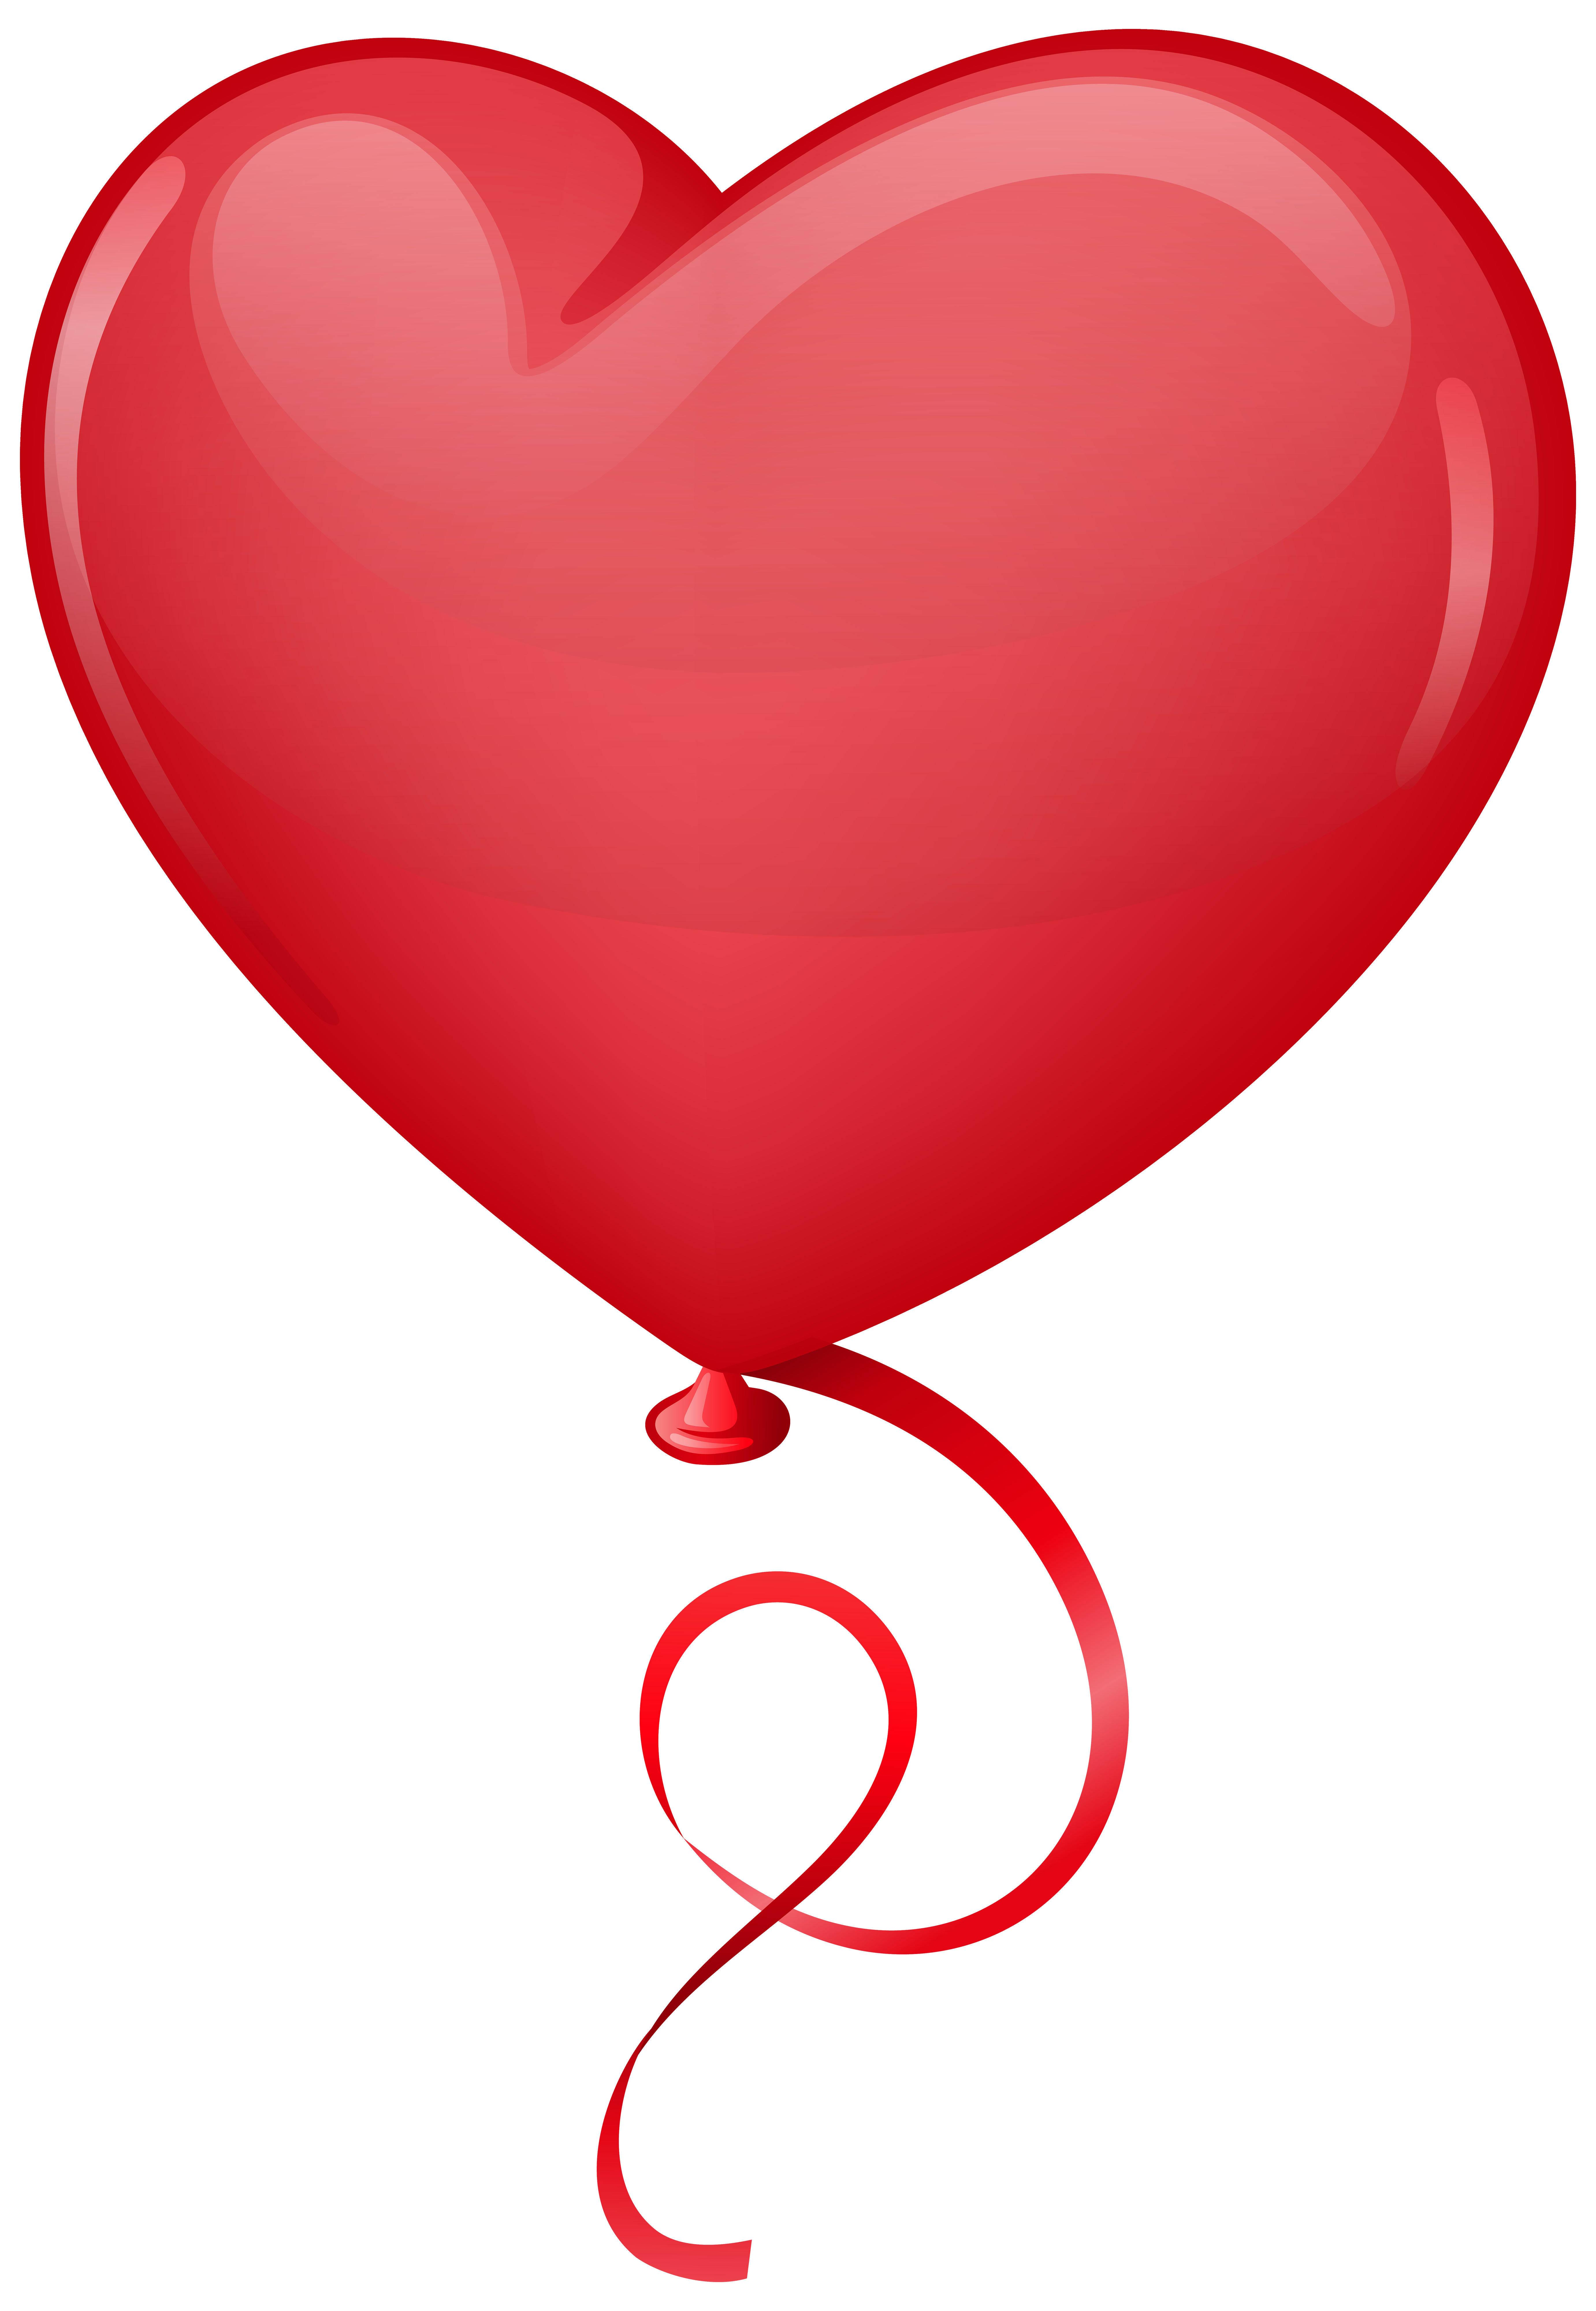 Heart balloon clipart graphic black and white stock Red Heart Balloon Clip Art PNG Image | Gallery Yopriceville - High ... graphic black and white stock